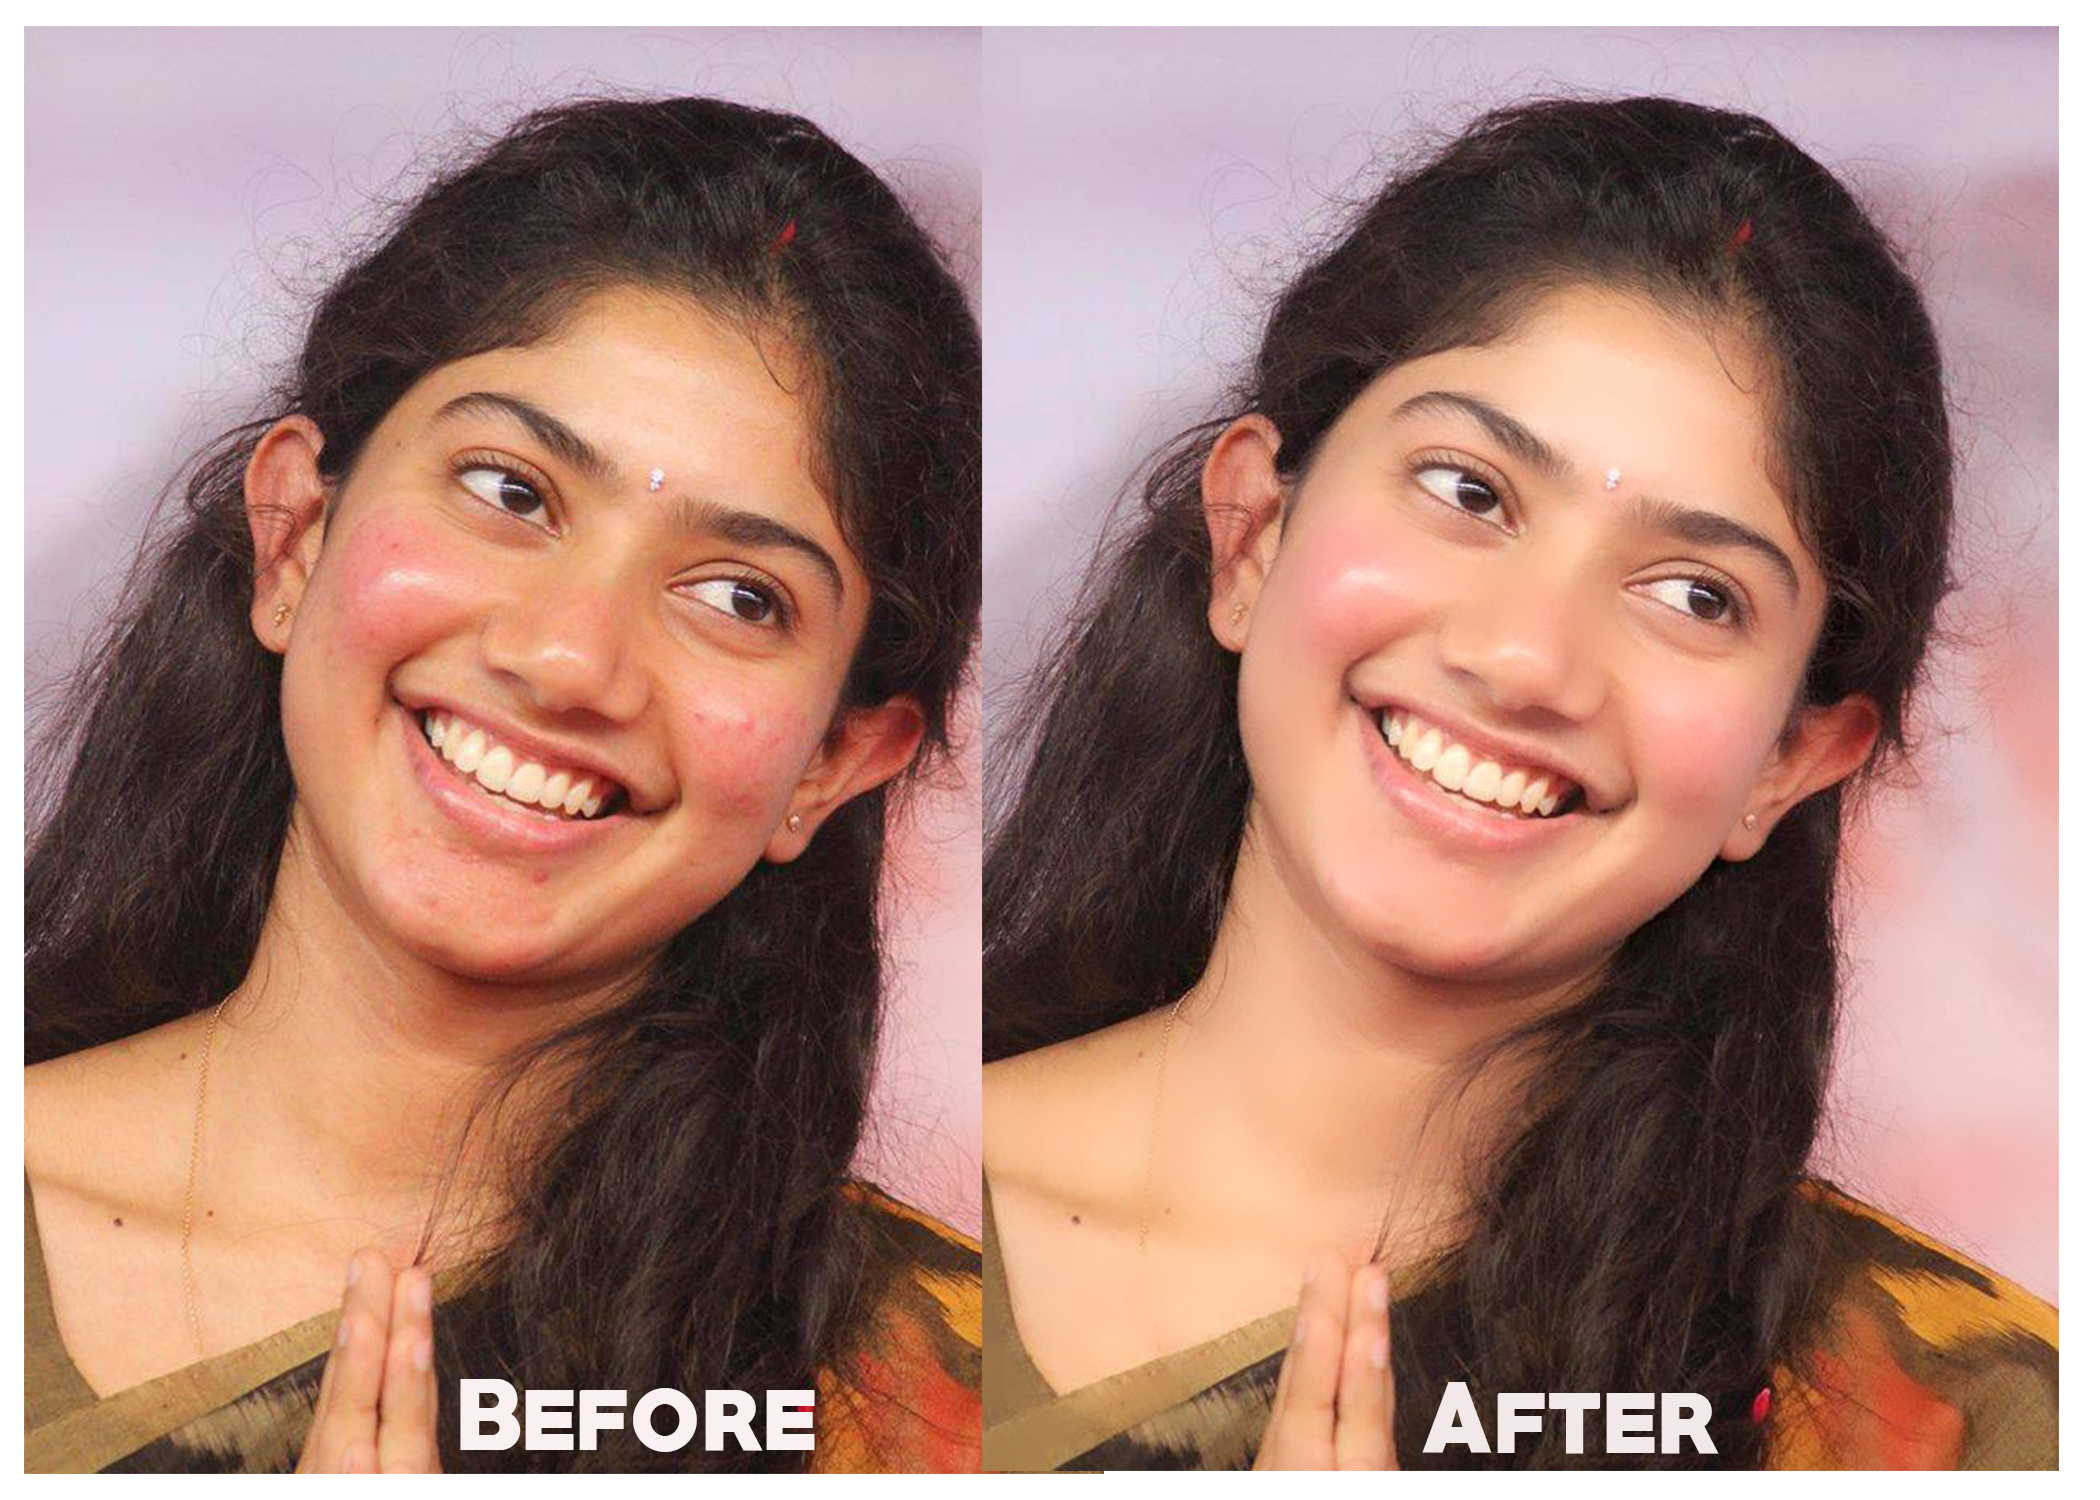 I will professionally retouch and edit your photos with high quality